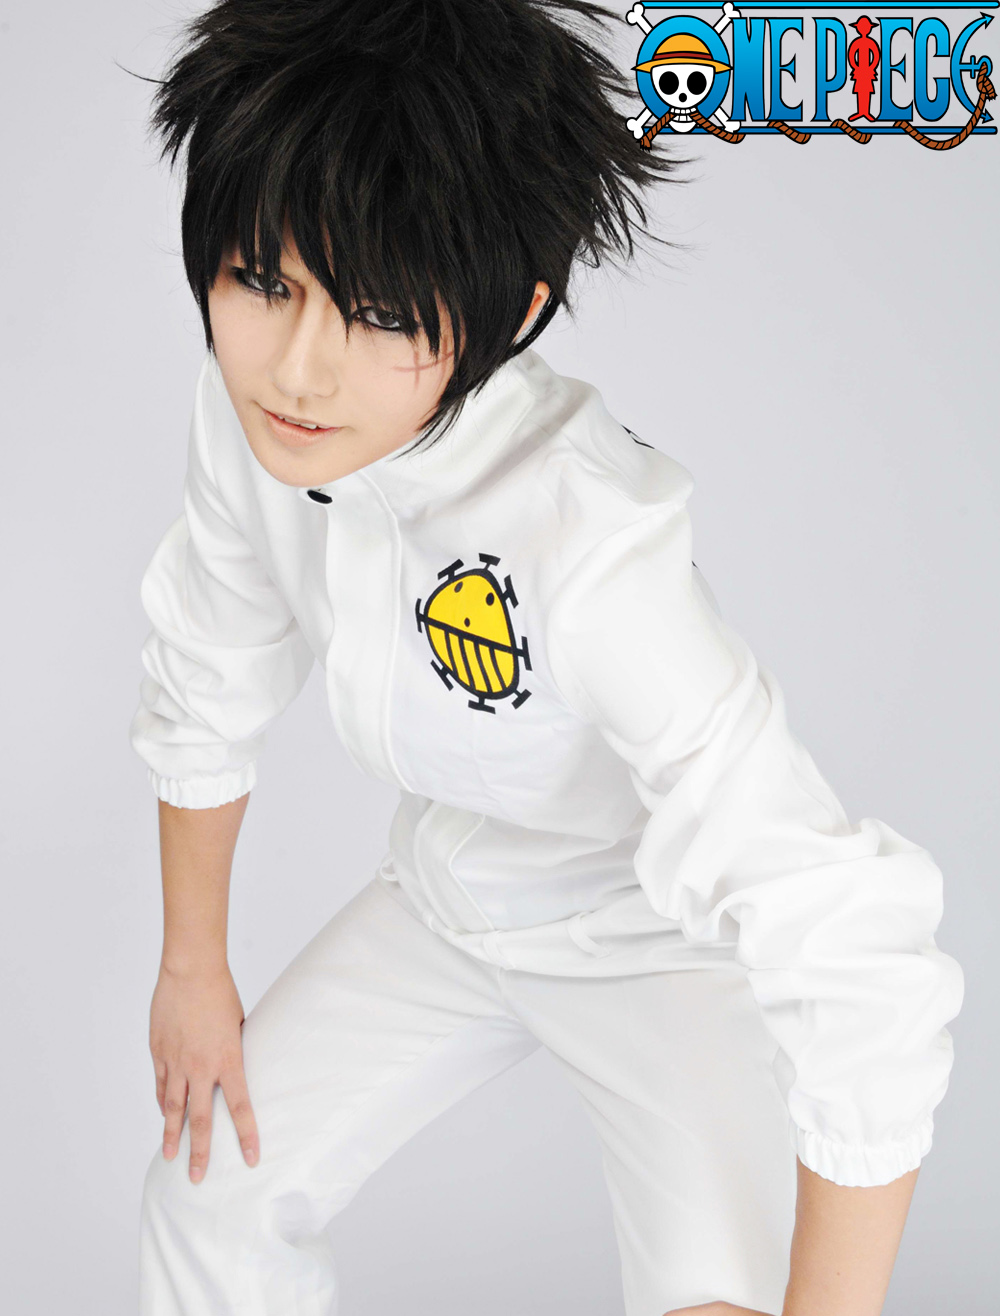 Free Shipping One Piece Heart Pirates White Uniform Anime Cosplay Costume